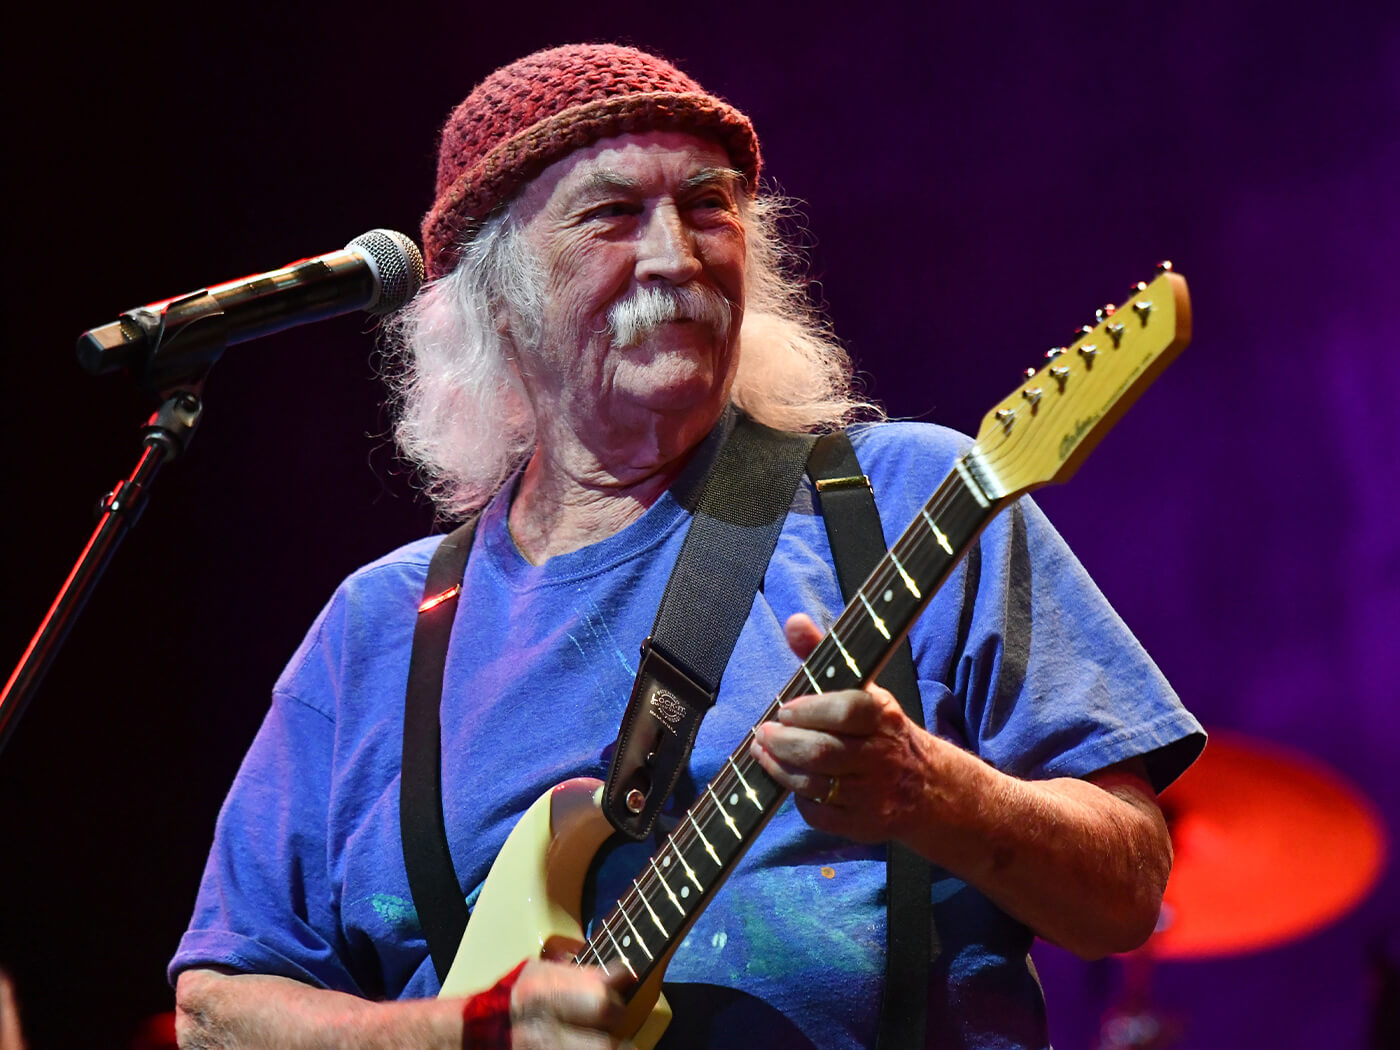 """David Crosby calls out Mike Love of the Beach Boys, saying he """"most assuredly has no talent at all"""""""